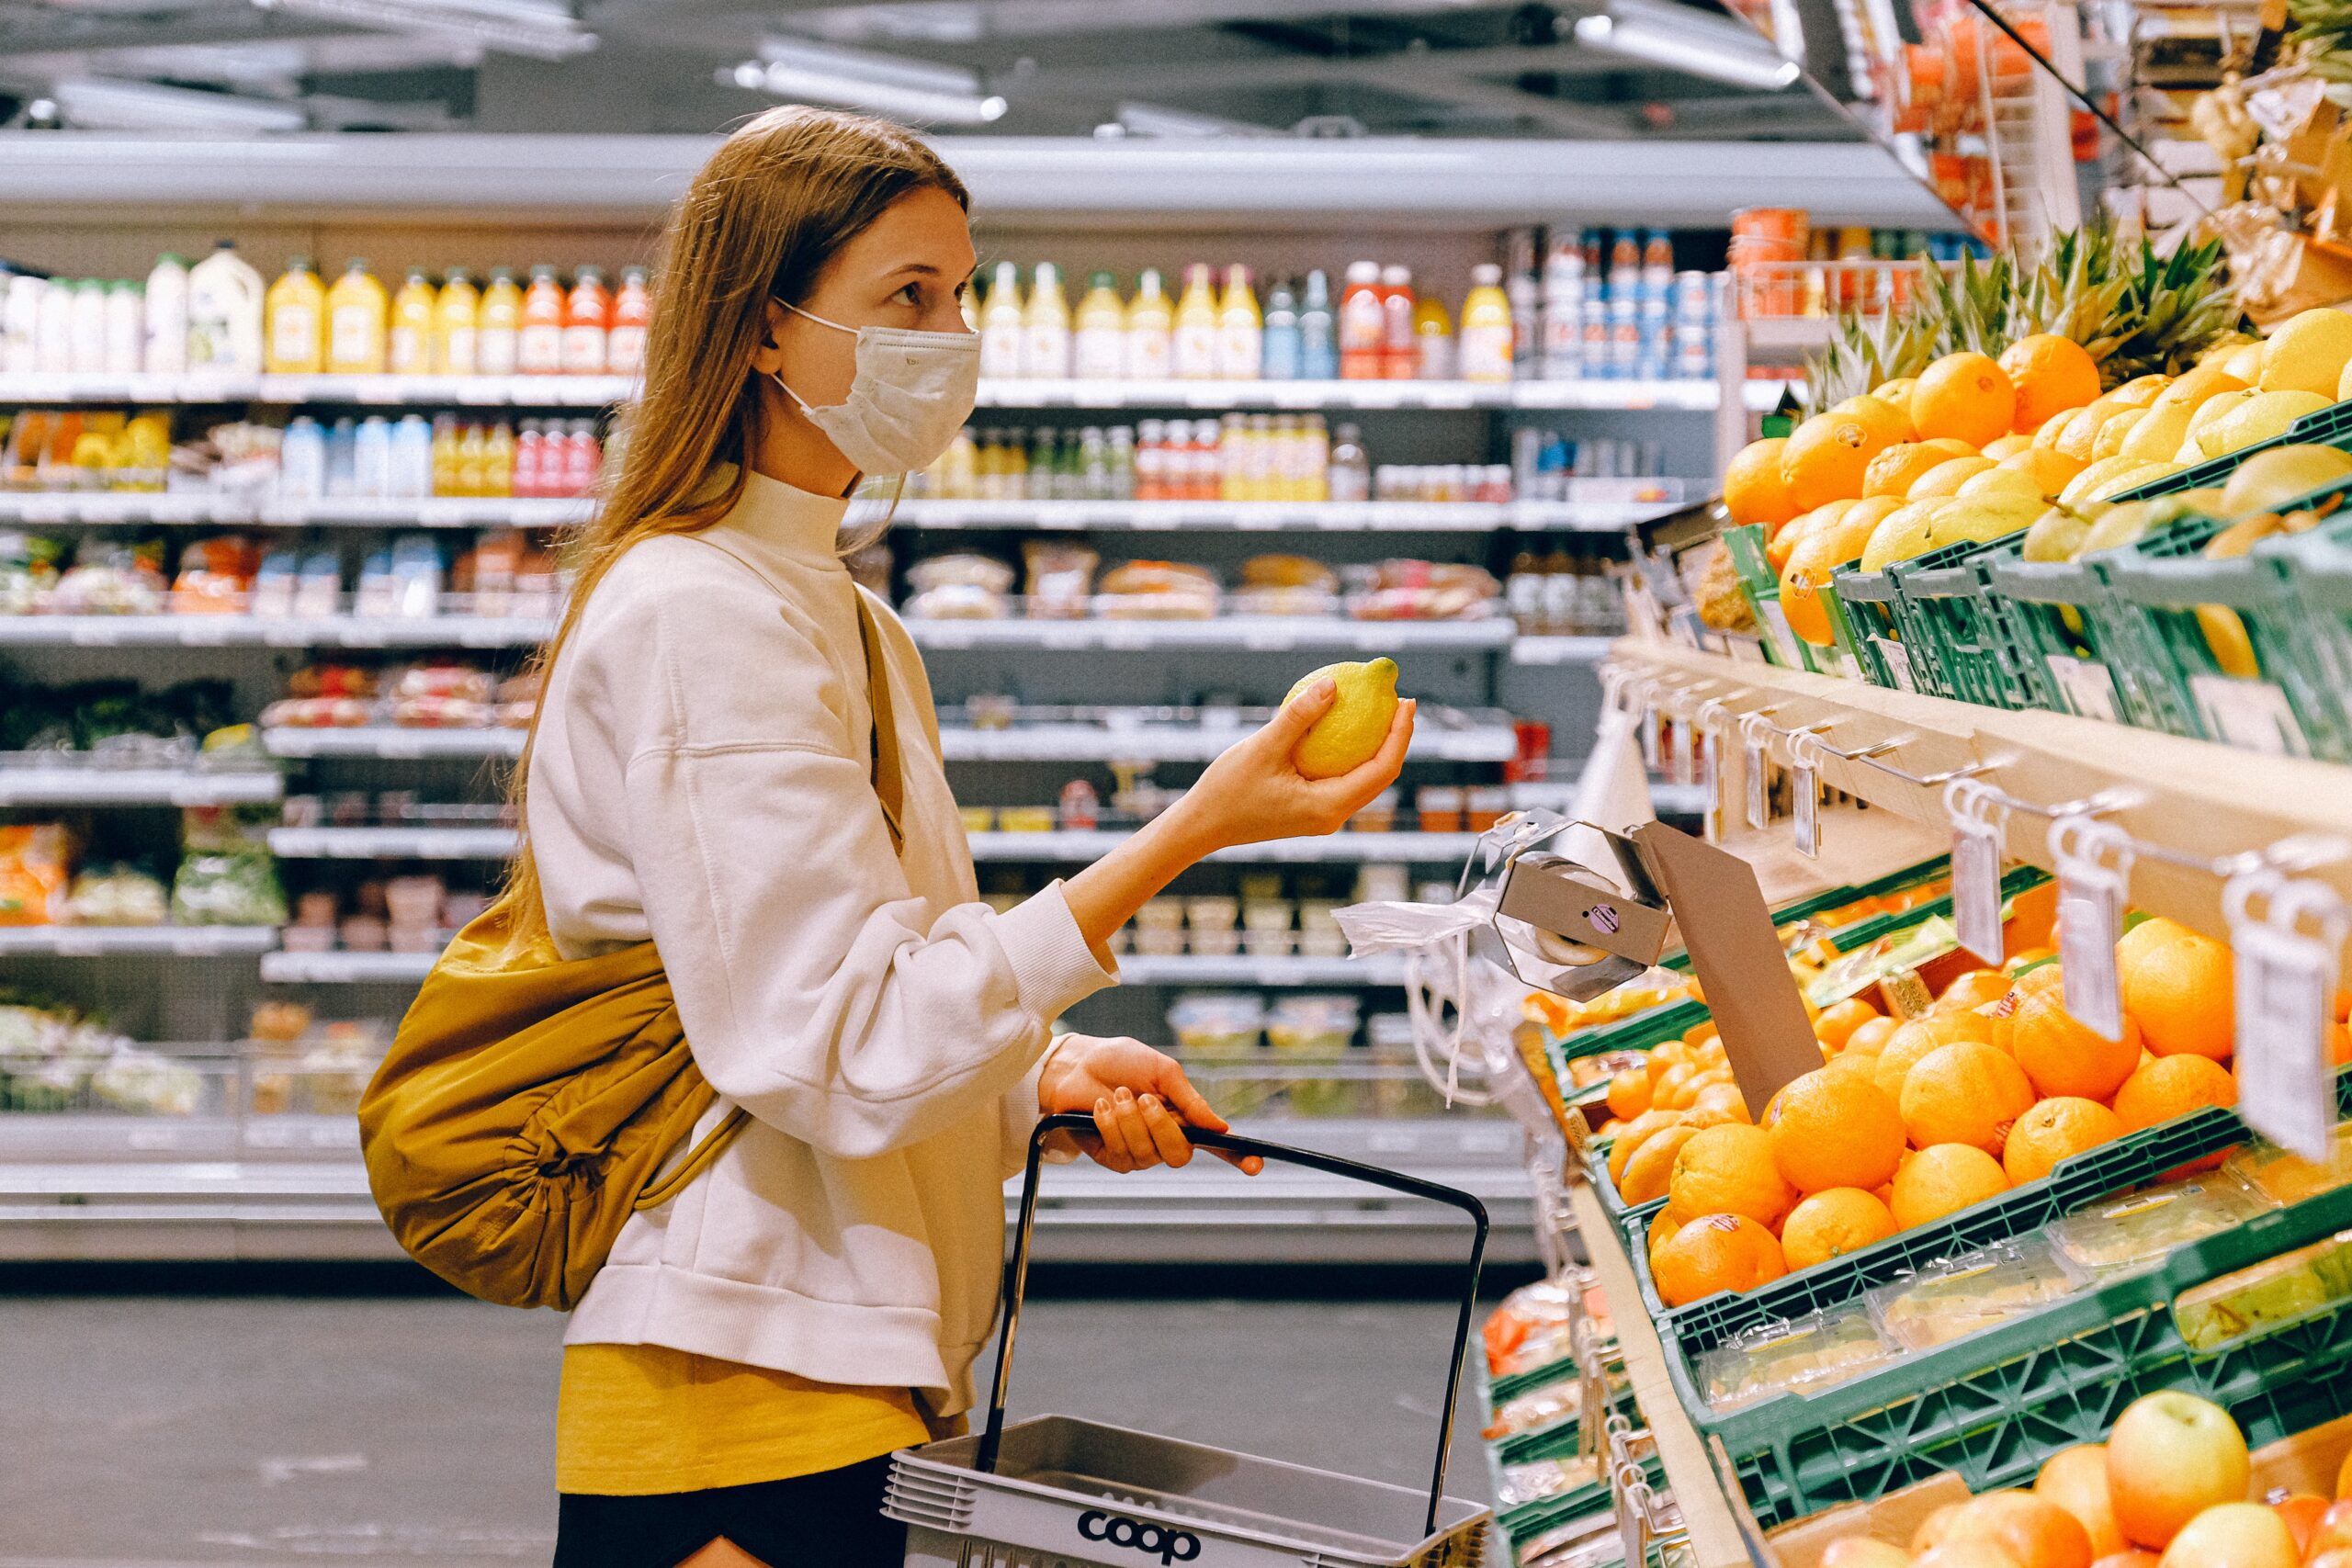 woman with white jacket wearing a mask in the produce section of the grocery store